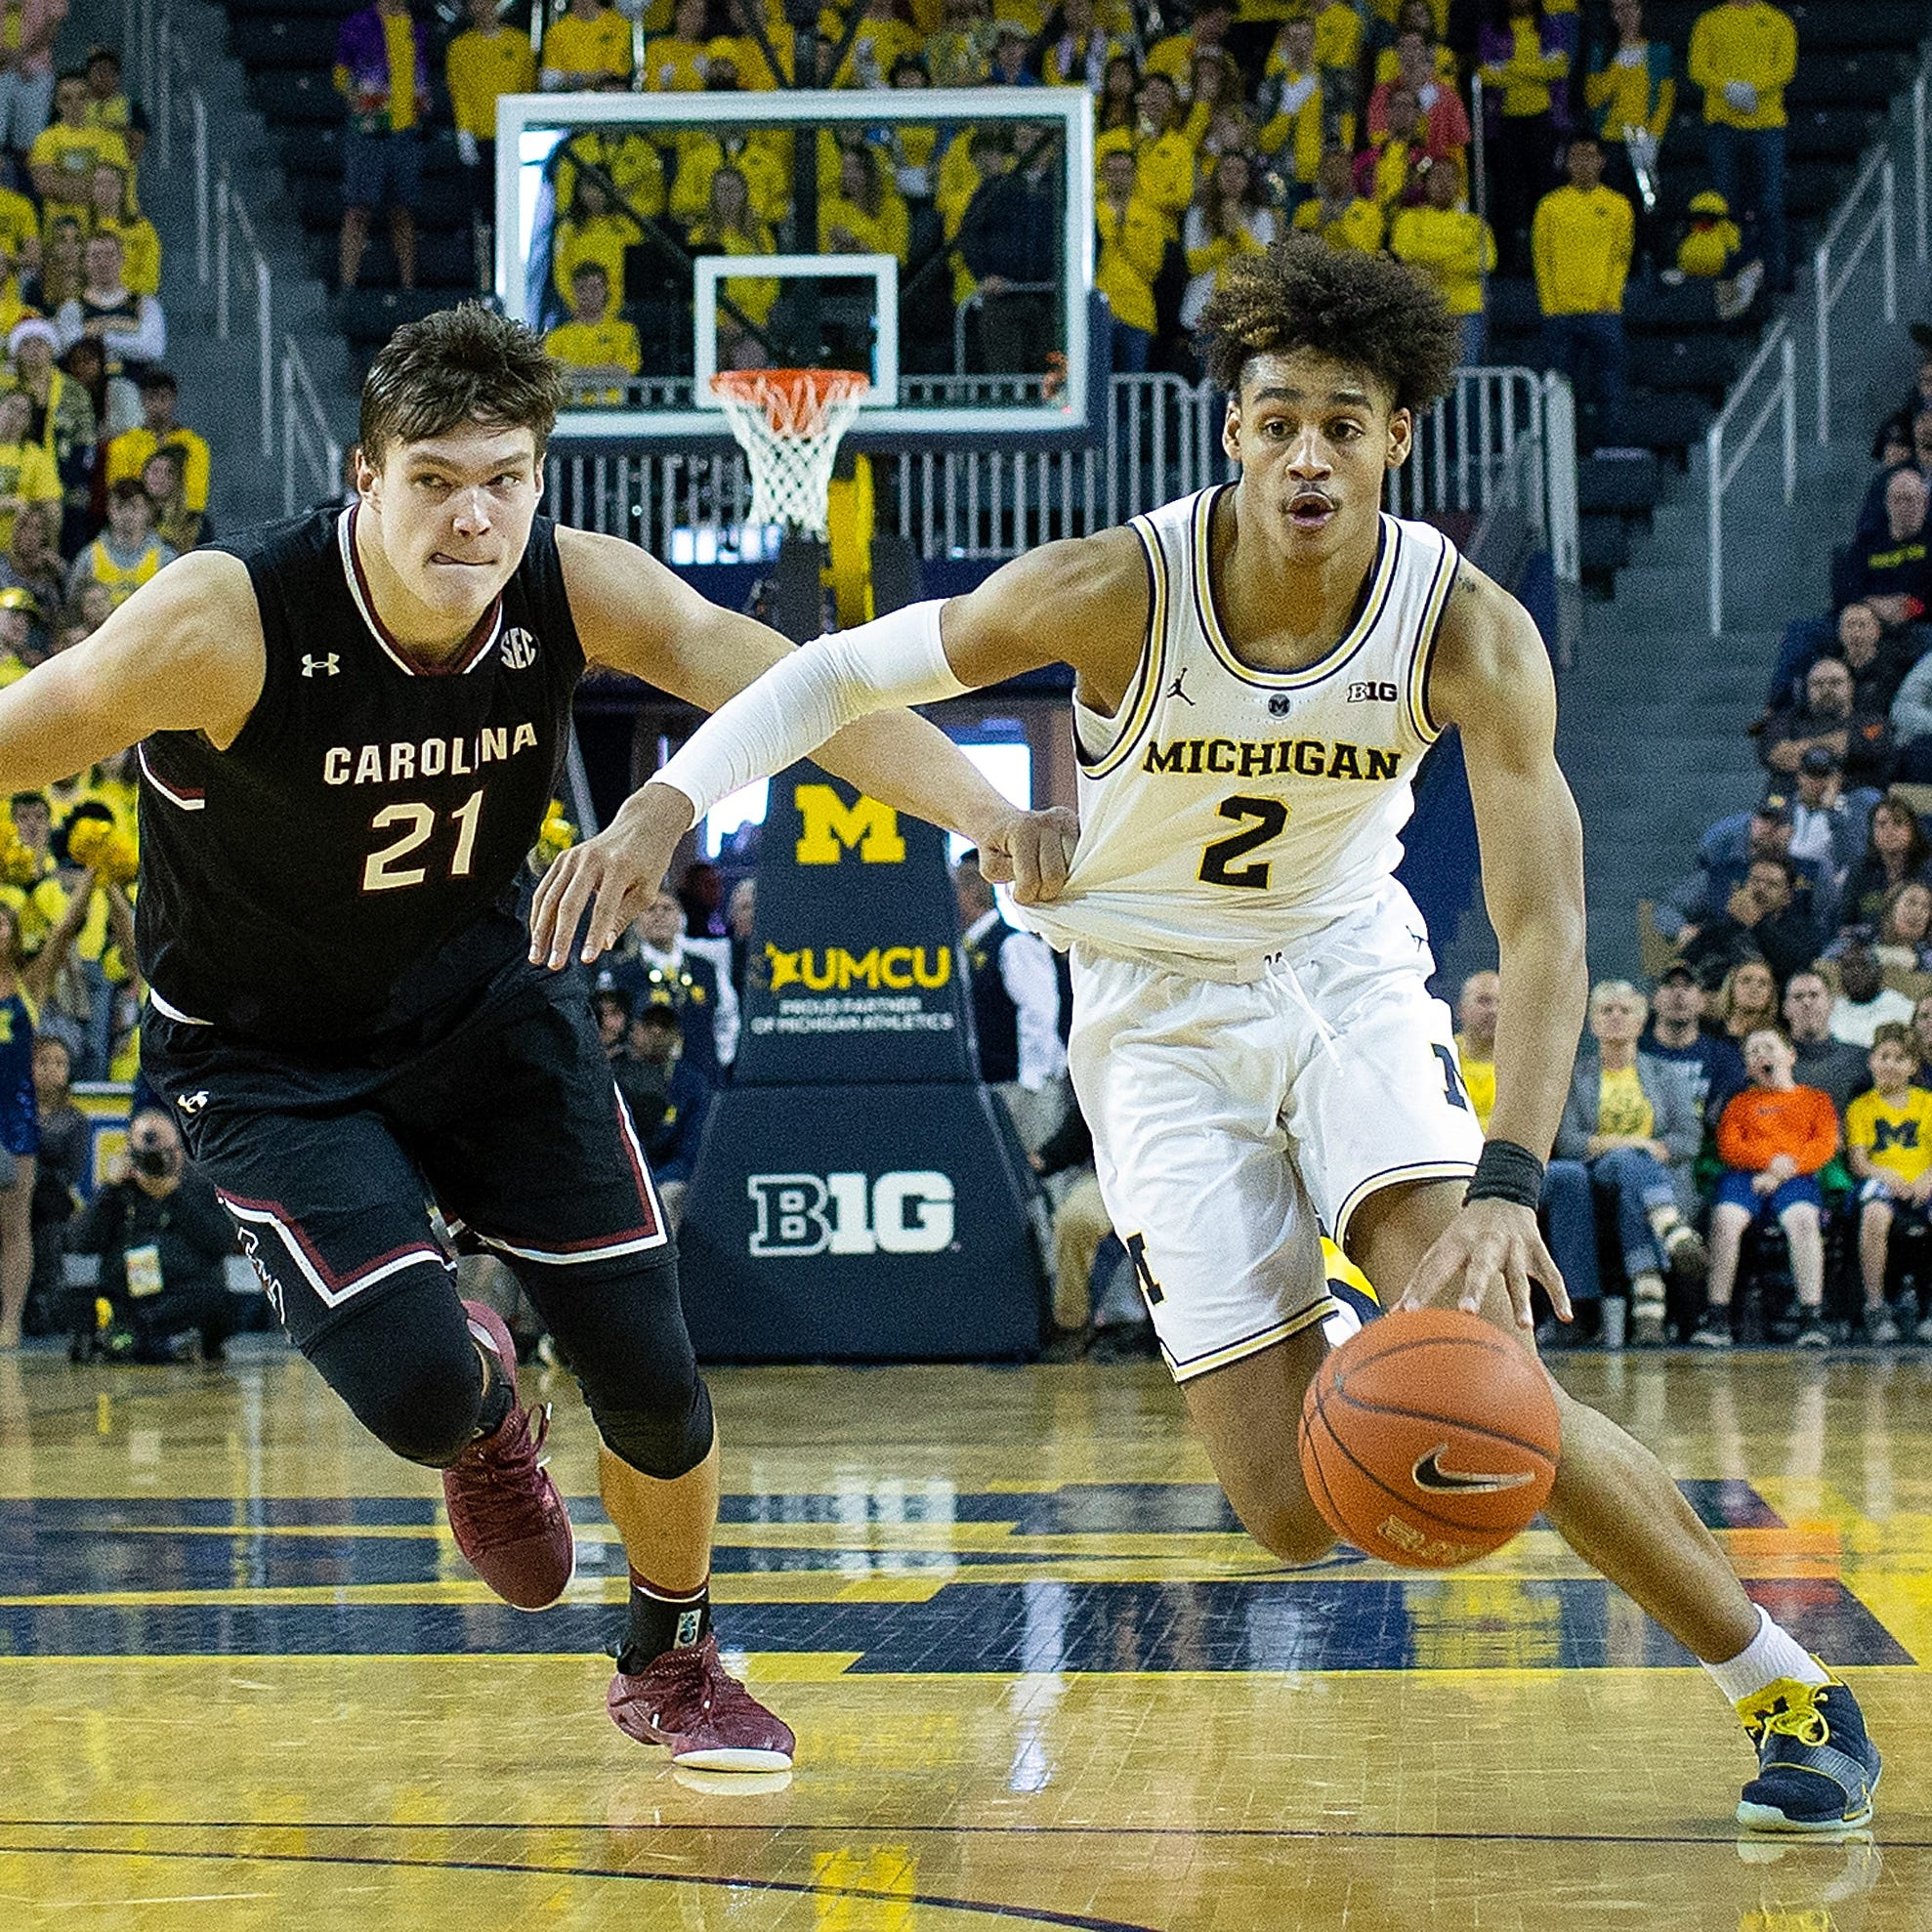 UM's Jordan Poole grows into role, out of slow start